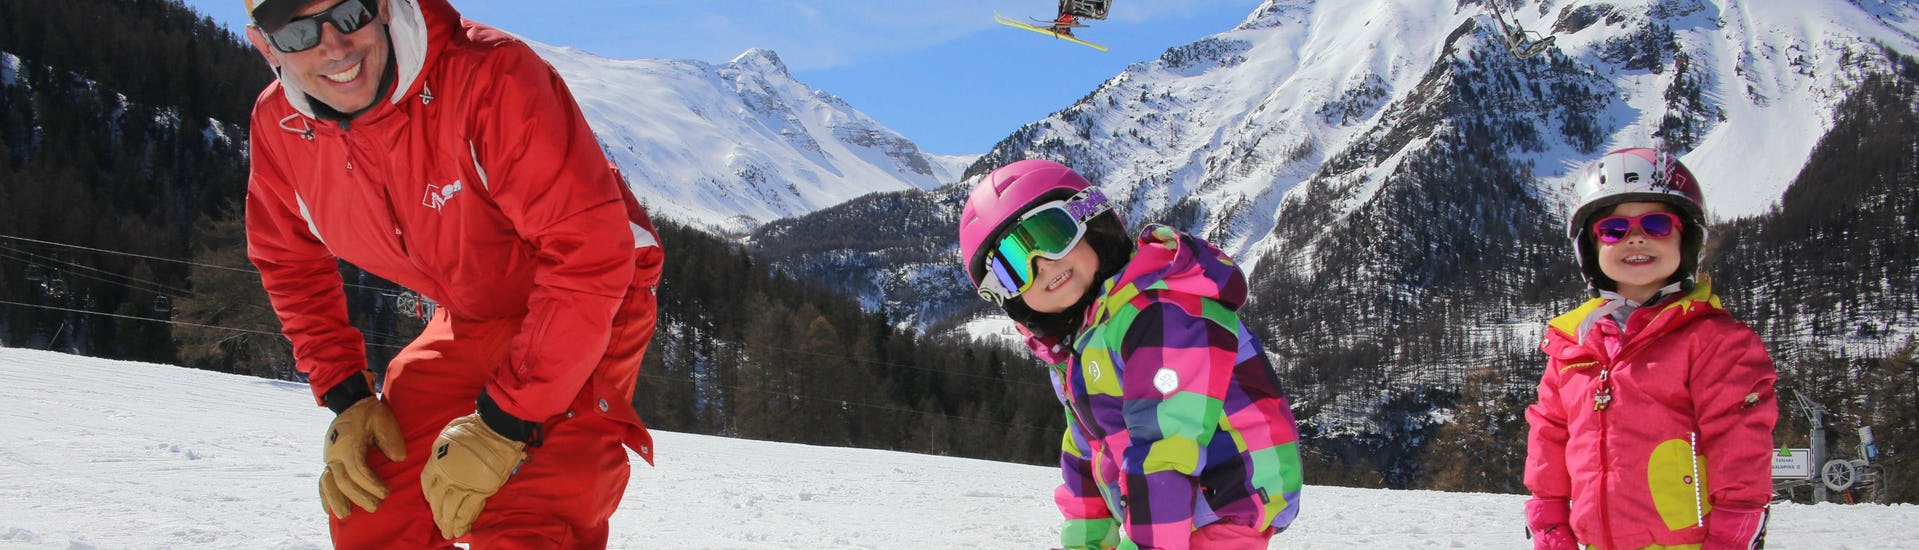 Kids Ski Lessons (6-13 years) - Low Season - All Levels